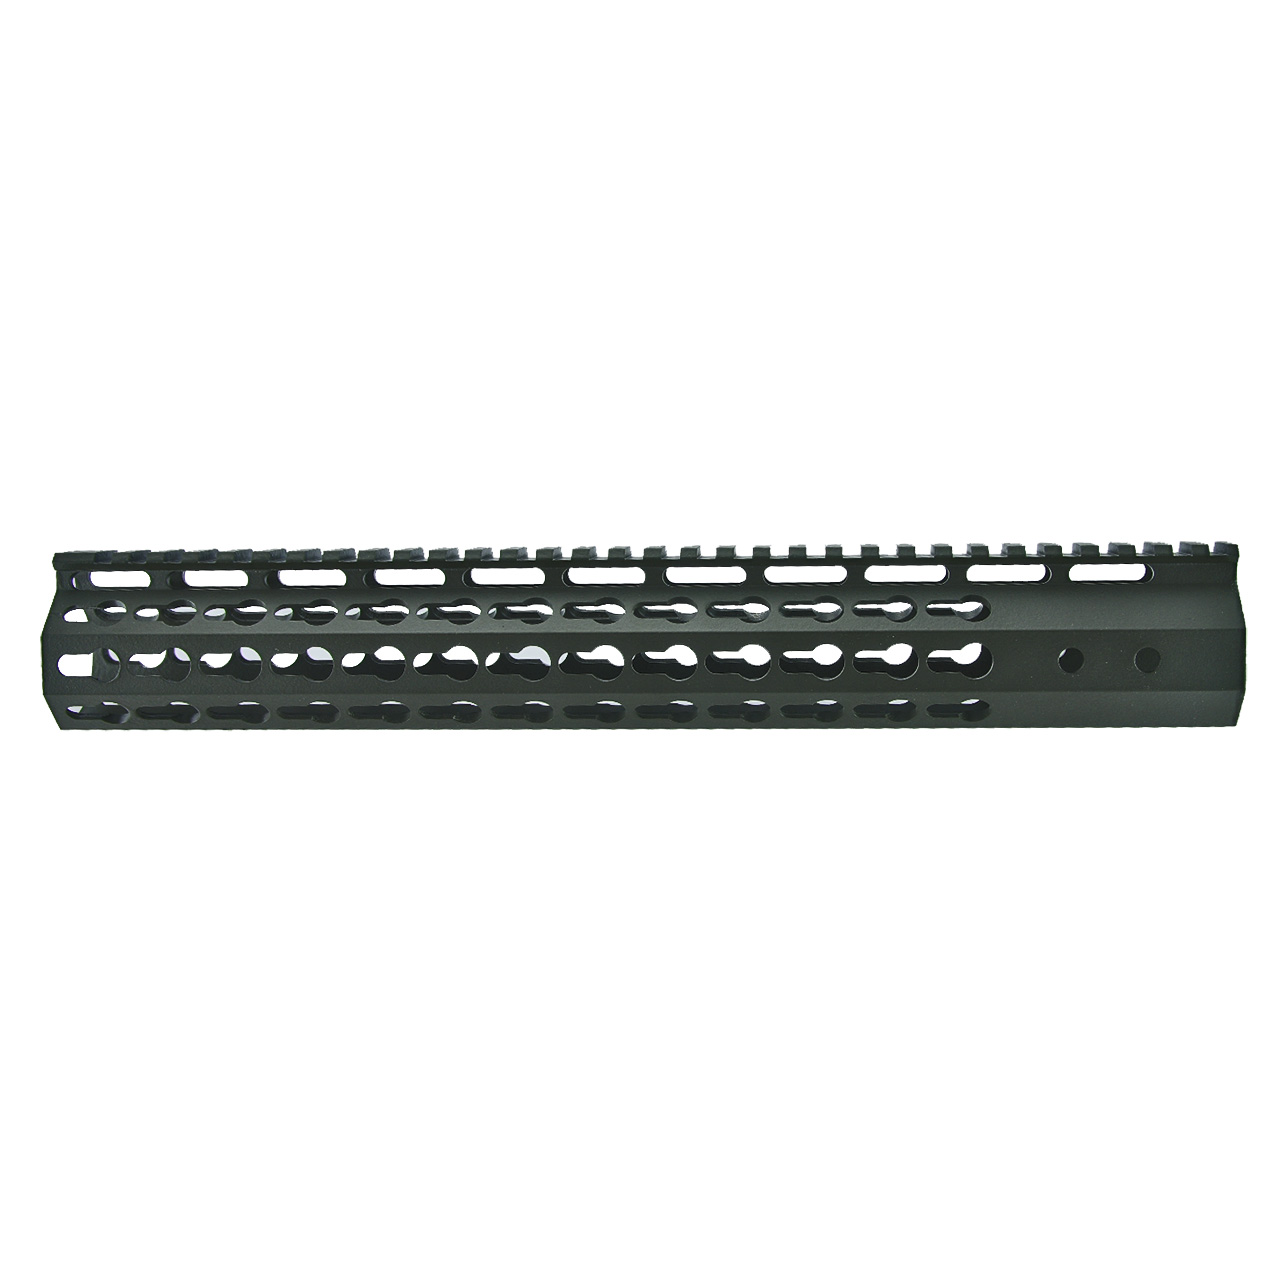 AR15 7 Sided Keymod Hand Guard, OD Green cerakote